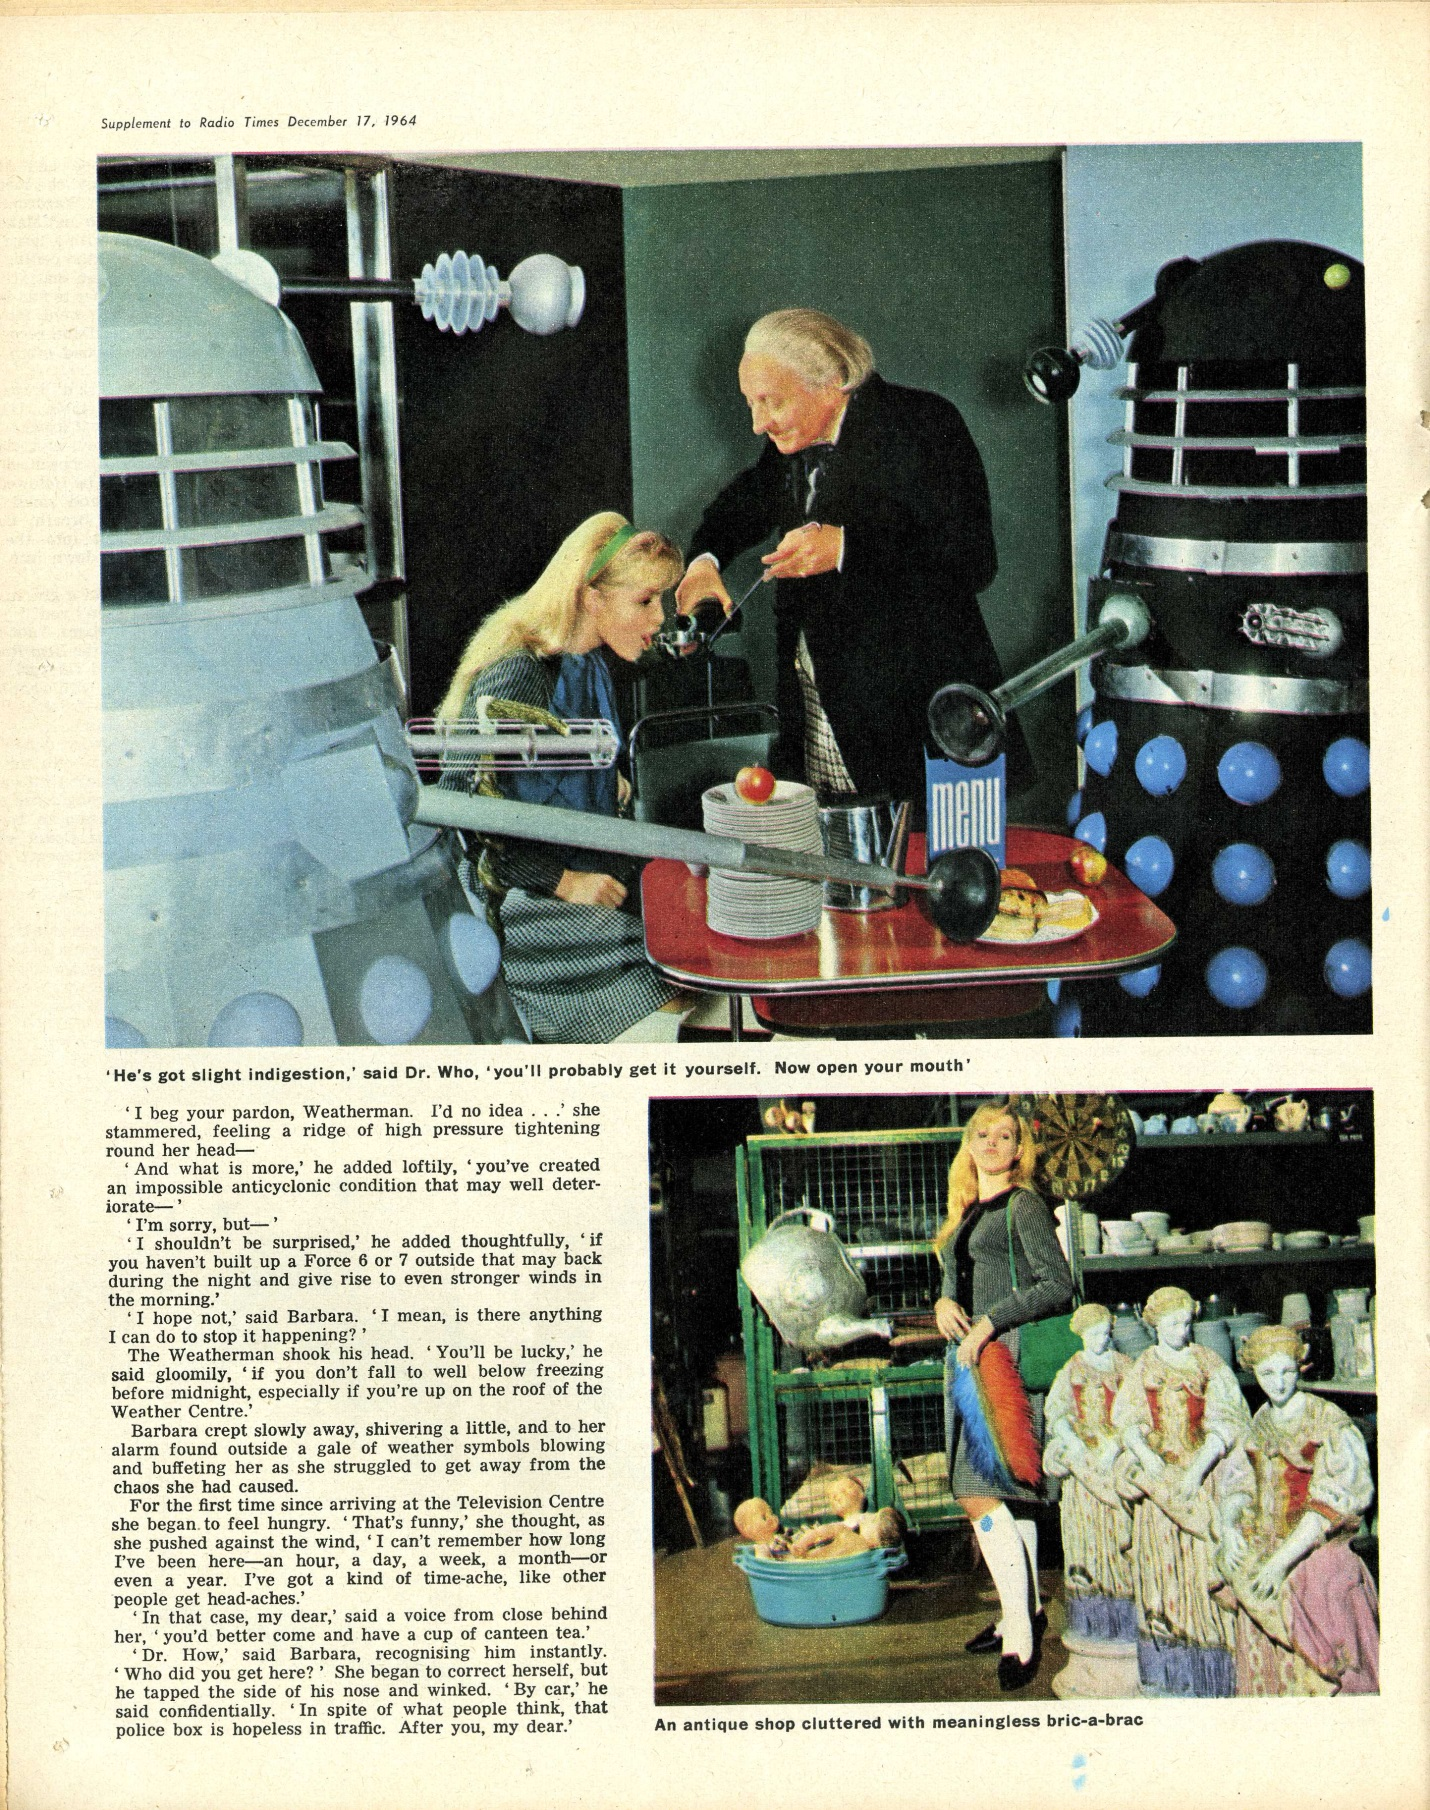 Radio Times. Supplement to the Christmas Radio Times, 19-26 December 1964